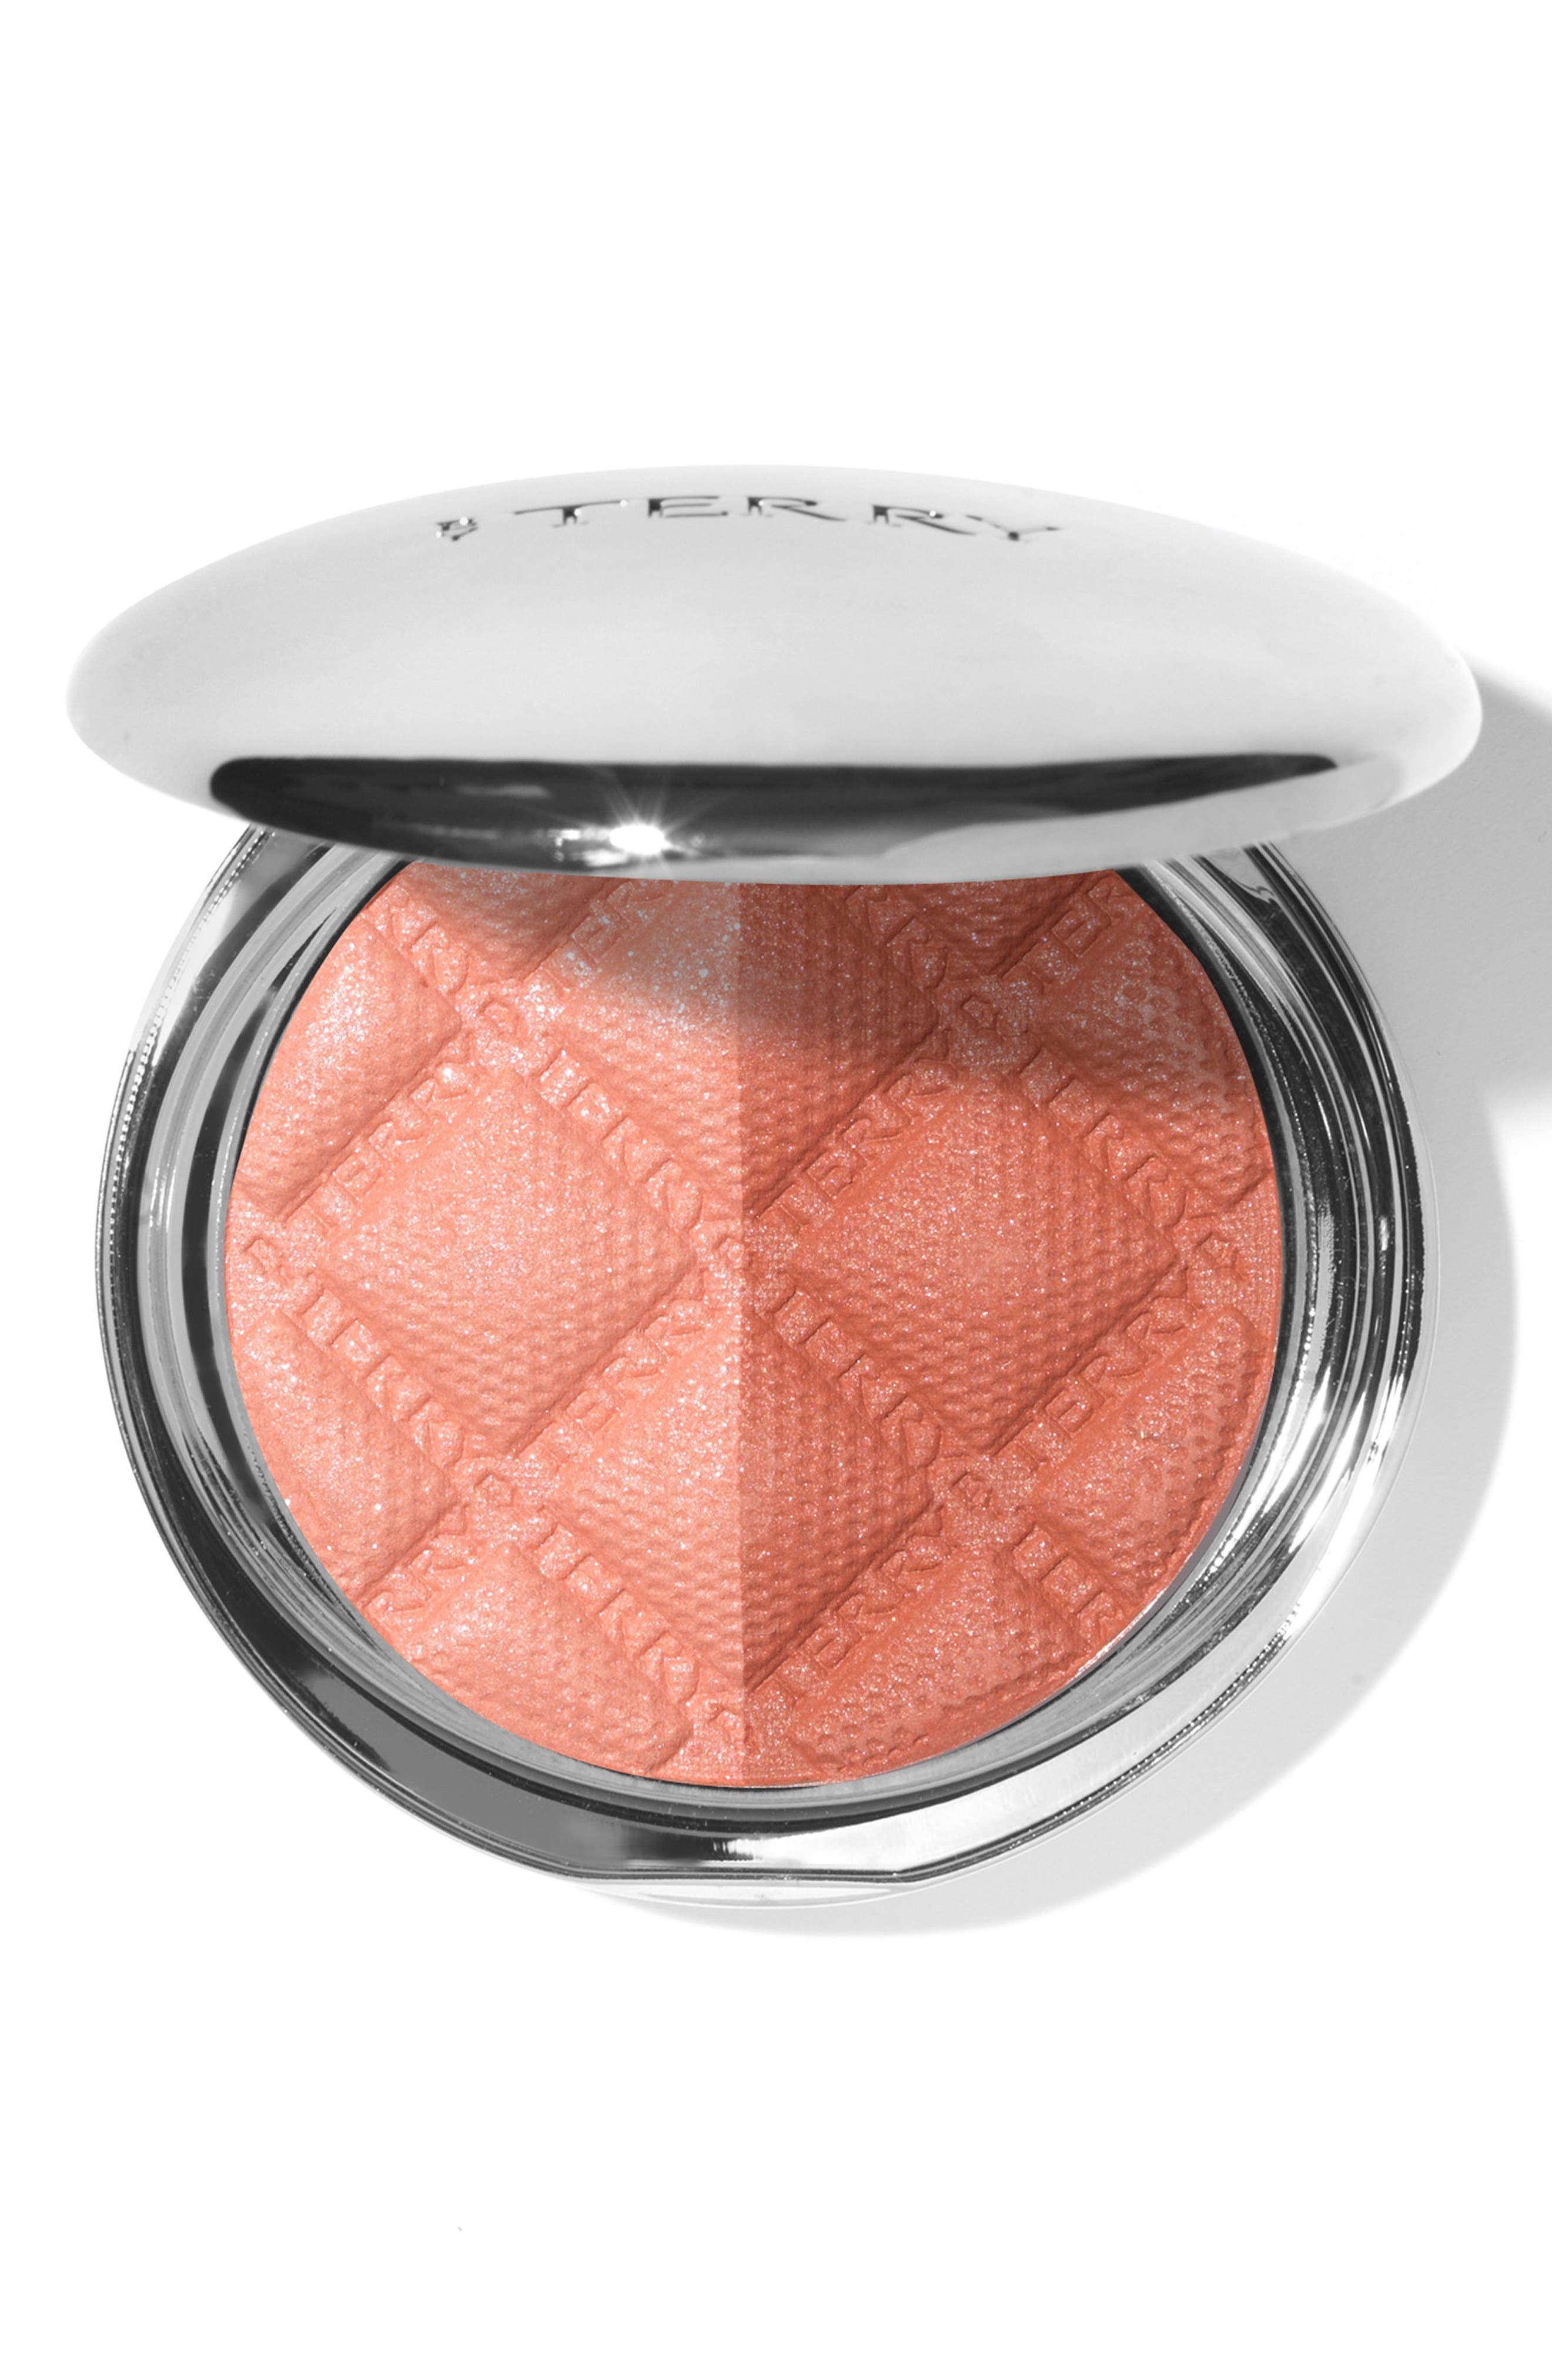 SPACE.NK.apothecary By Terry Terrybly Densiliss<sup>®</sup> Blush Contouring Compact,                         Main,                         color, 300 Peachy Sculpt